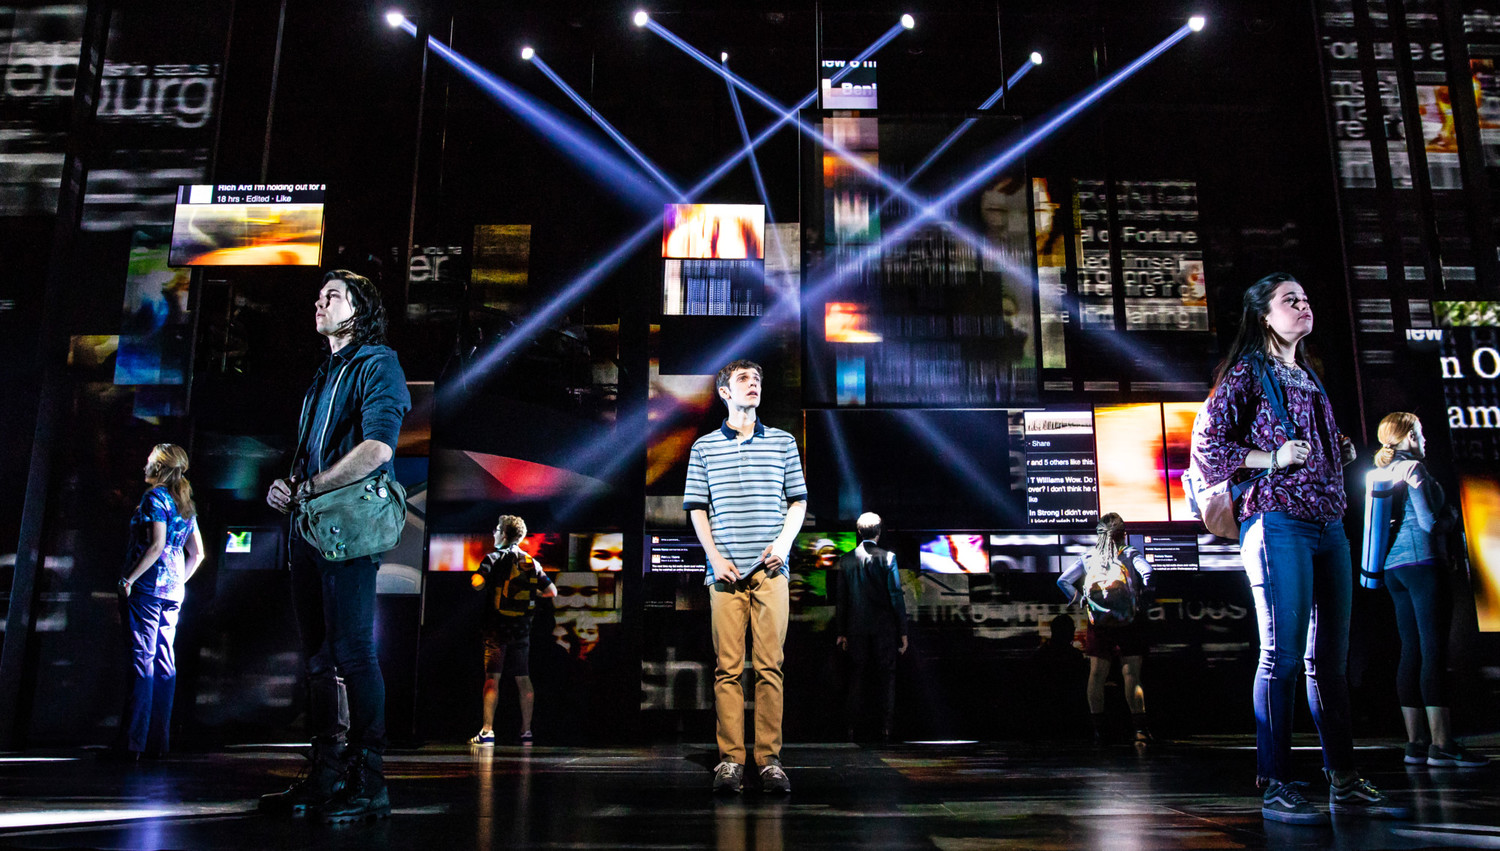 BWW Review: DEAR EVAN HANSEN is a Smash Hit at the Aronoff Center